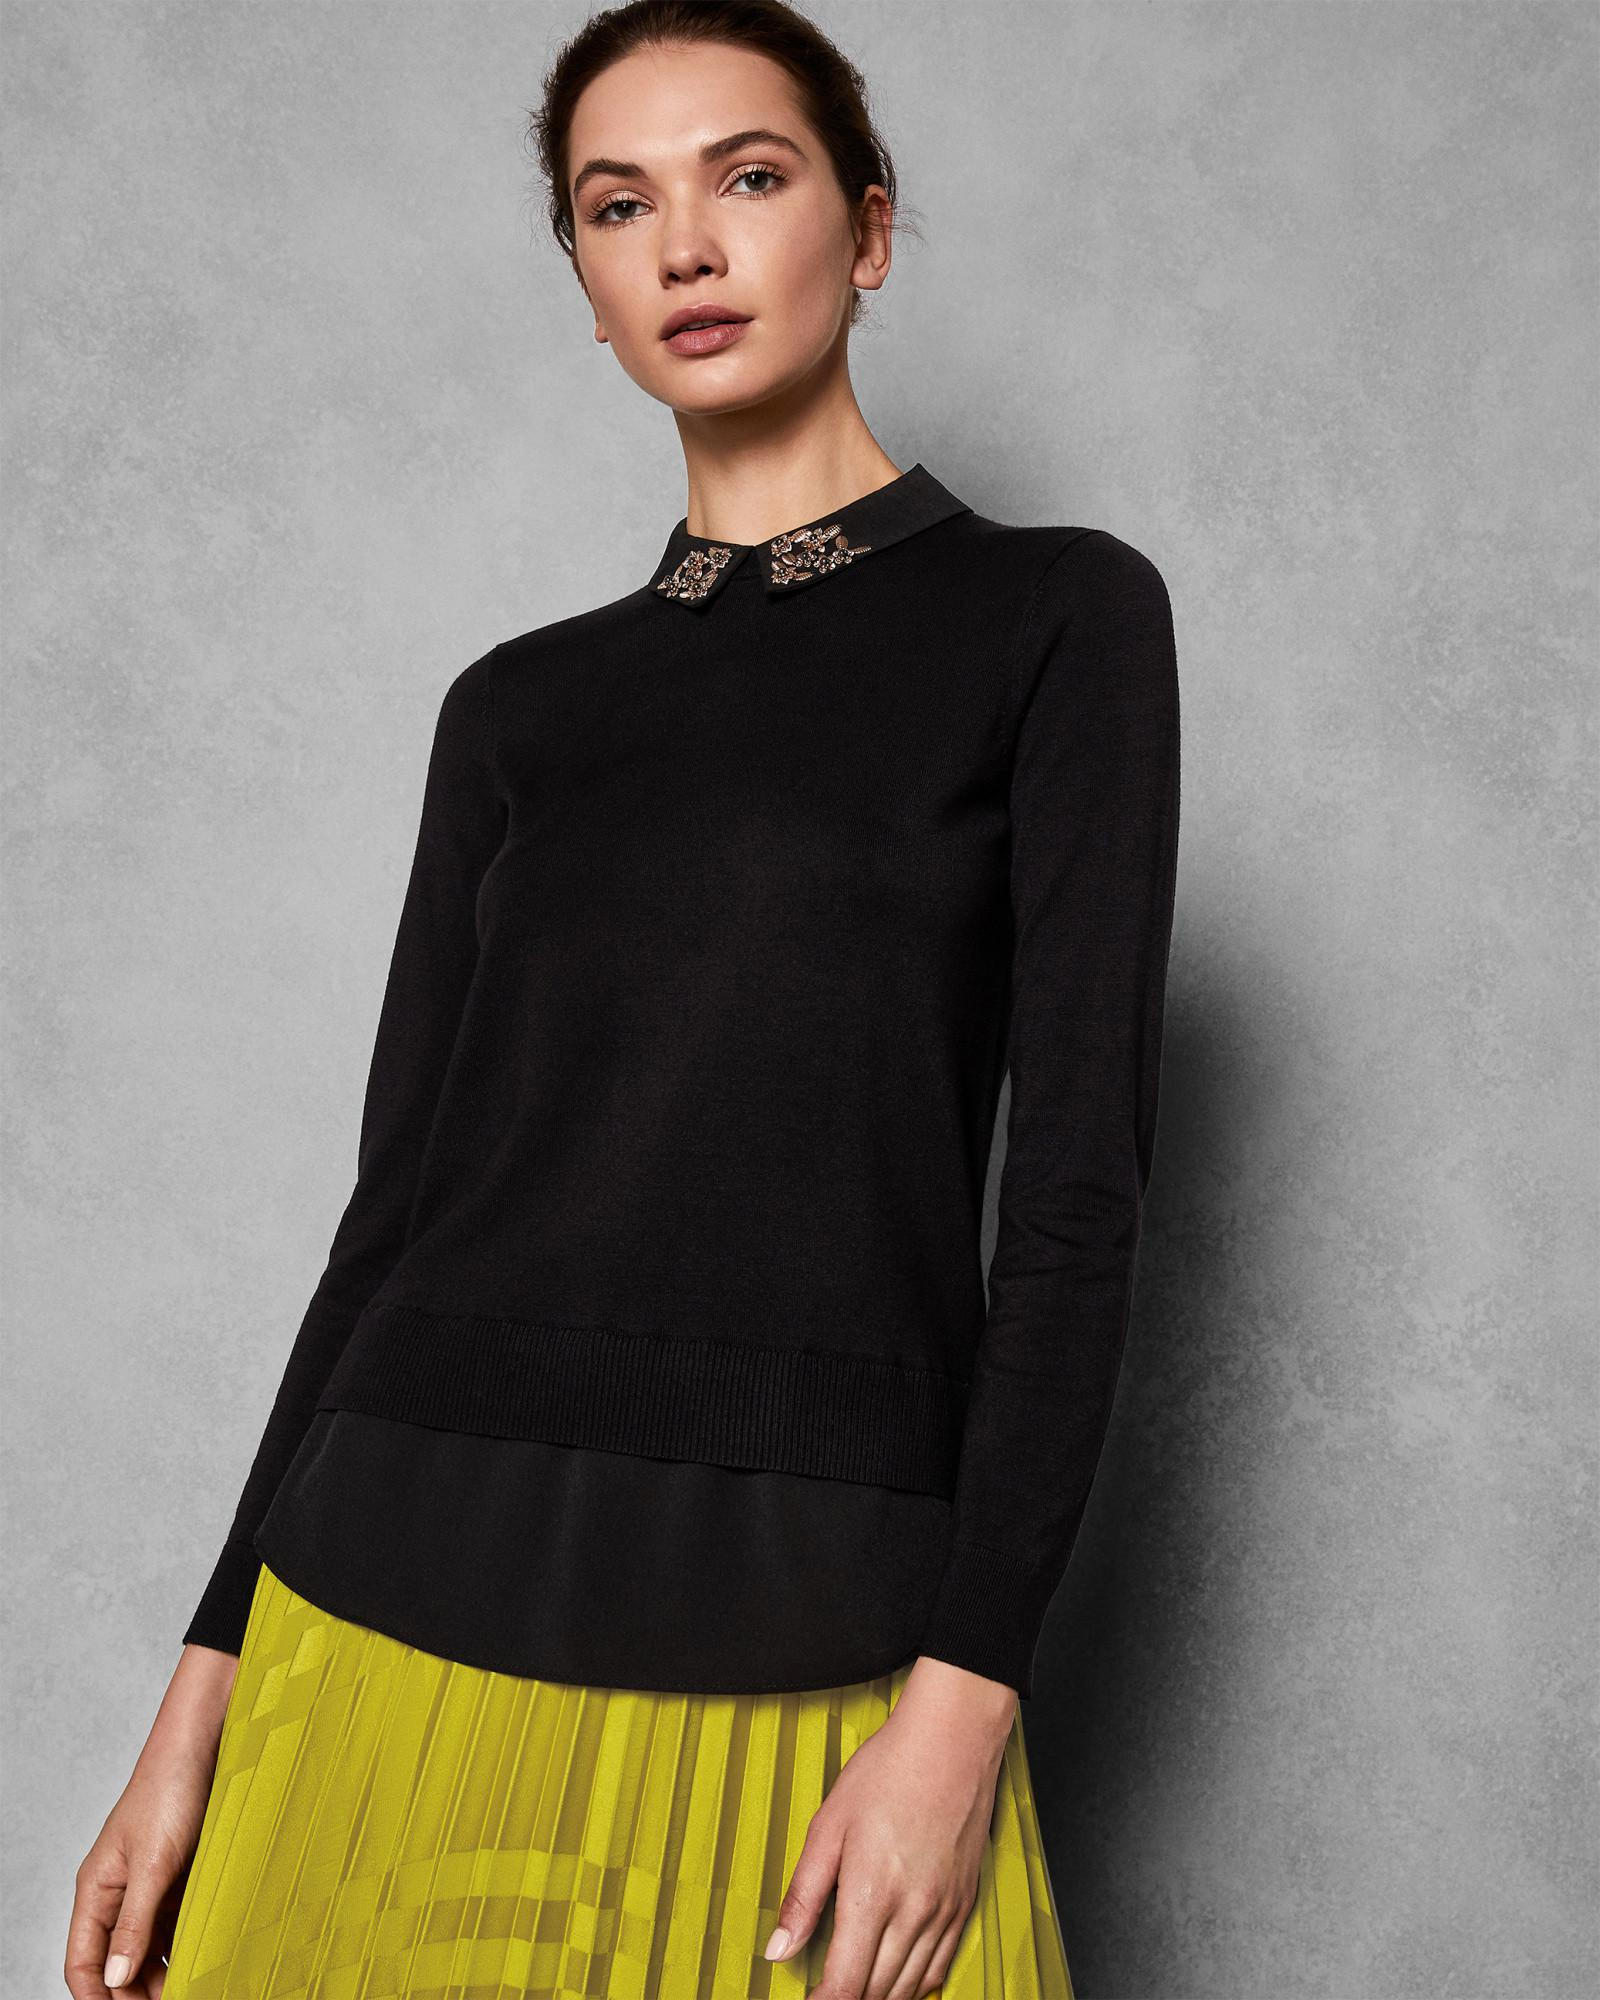 4367b26eab4 Ted Baker Embellished Collar Jumper in Black - Save 61% - Lyst